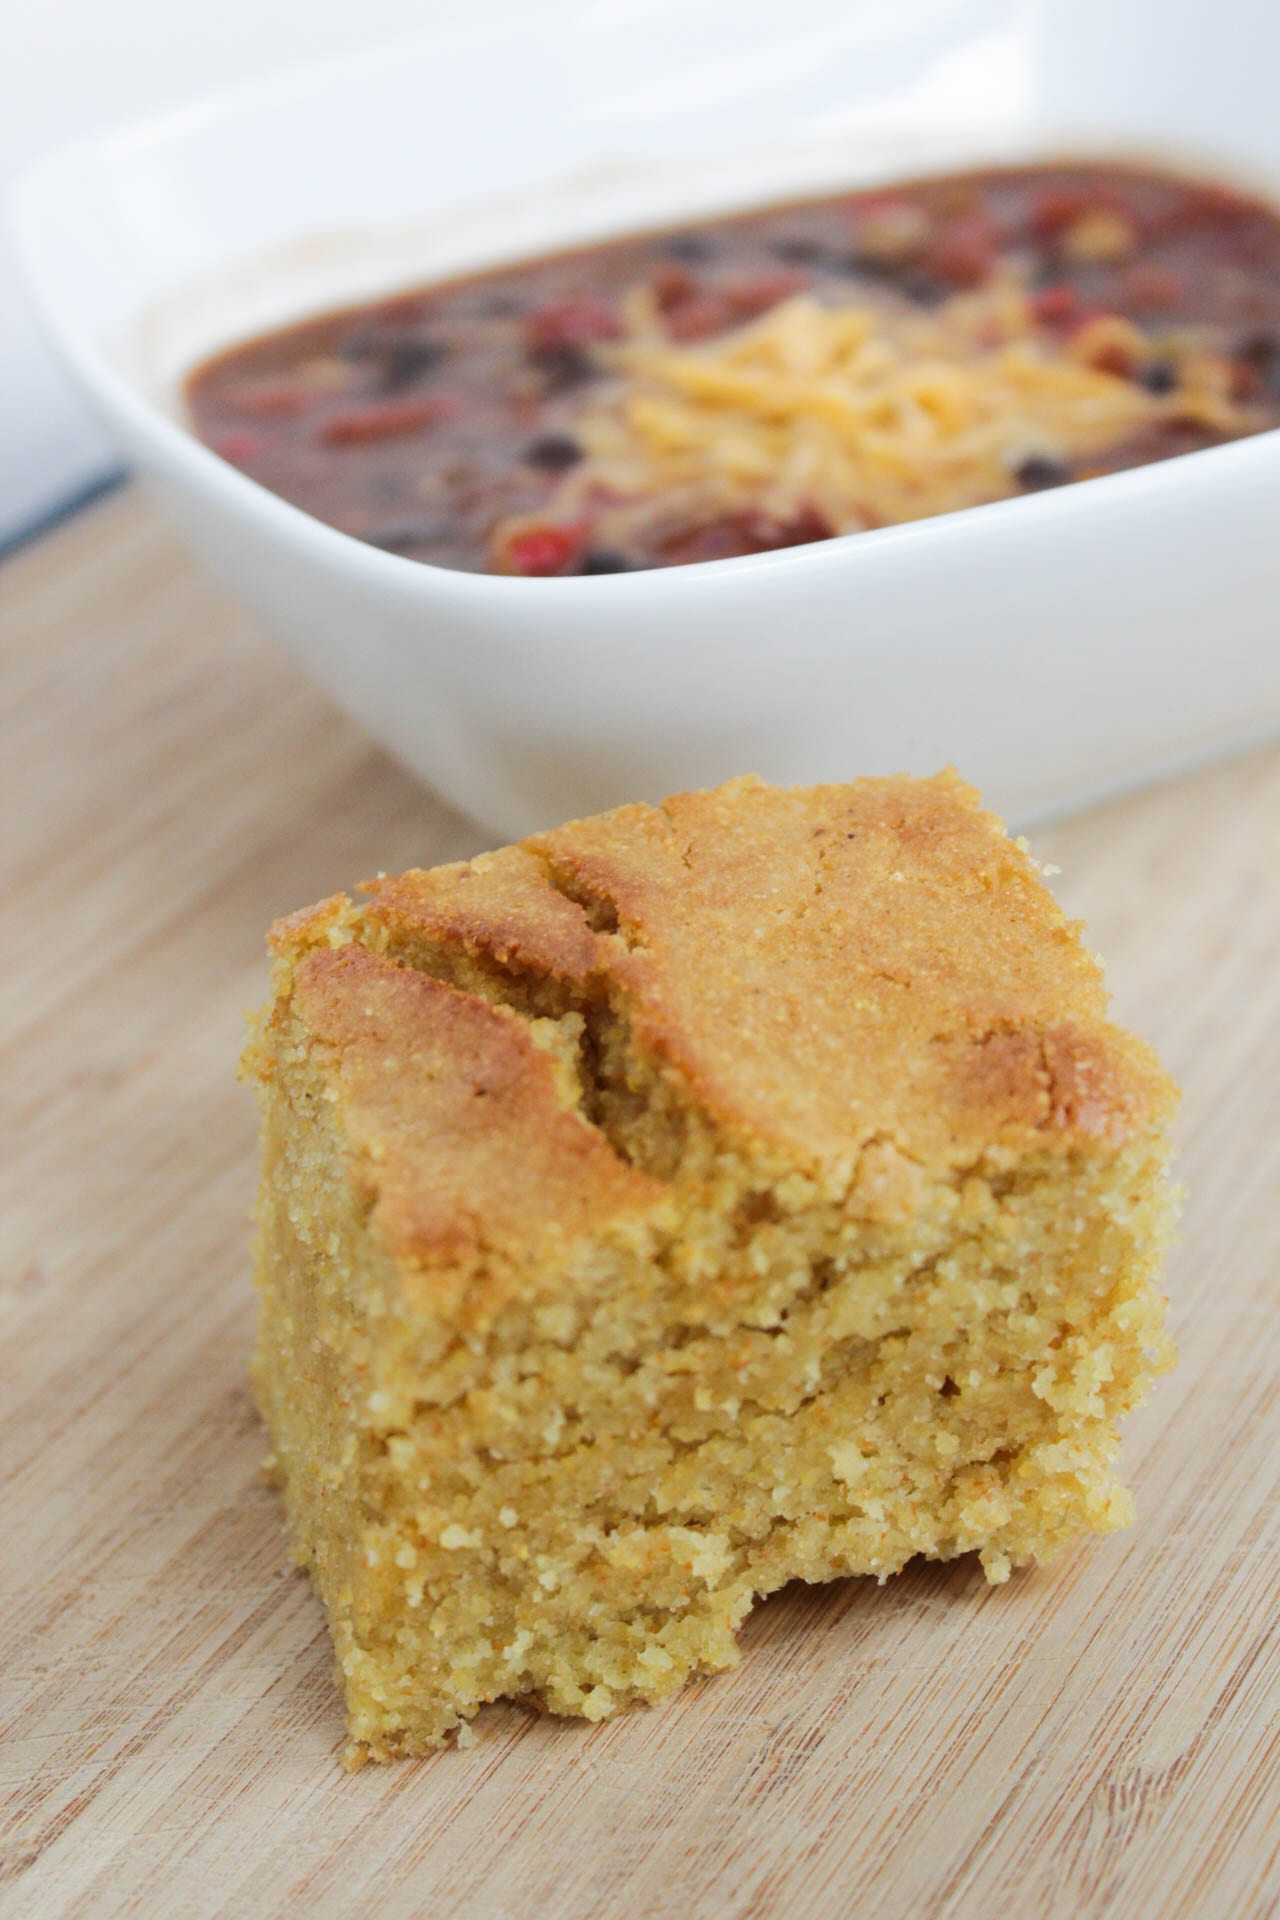 Cornbread with bowl of chili